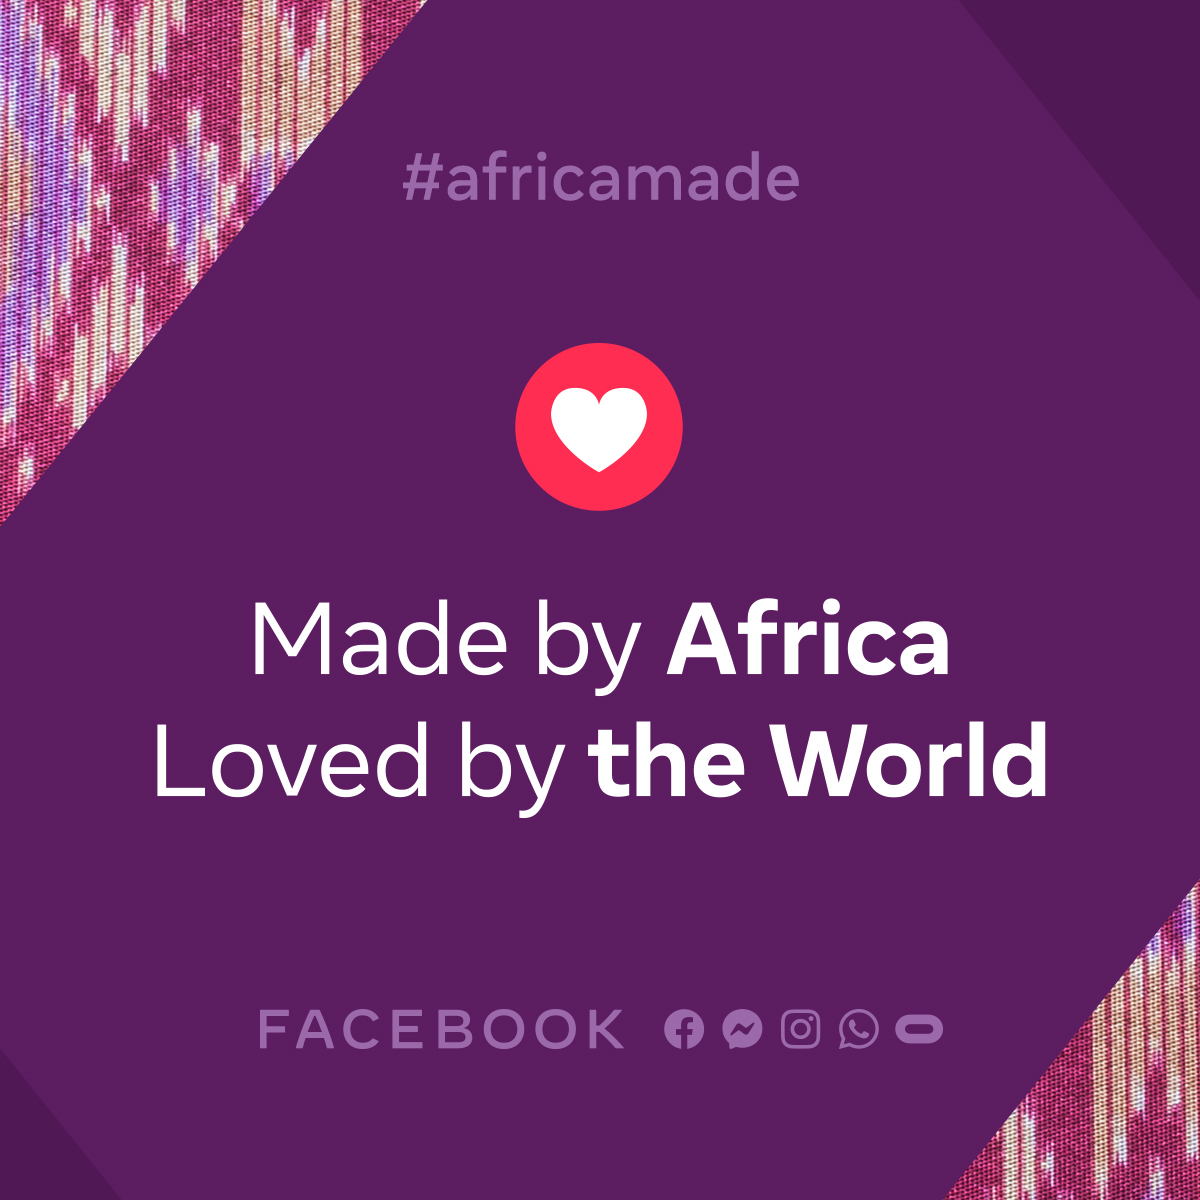 Africa Day: Facebook Africa launches 'Made by Africa, Loved by the World